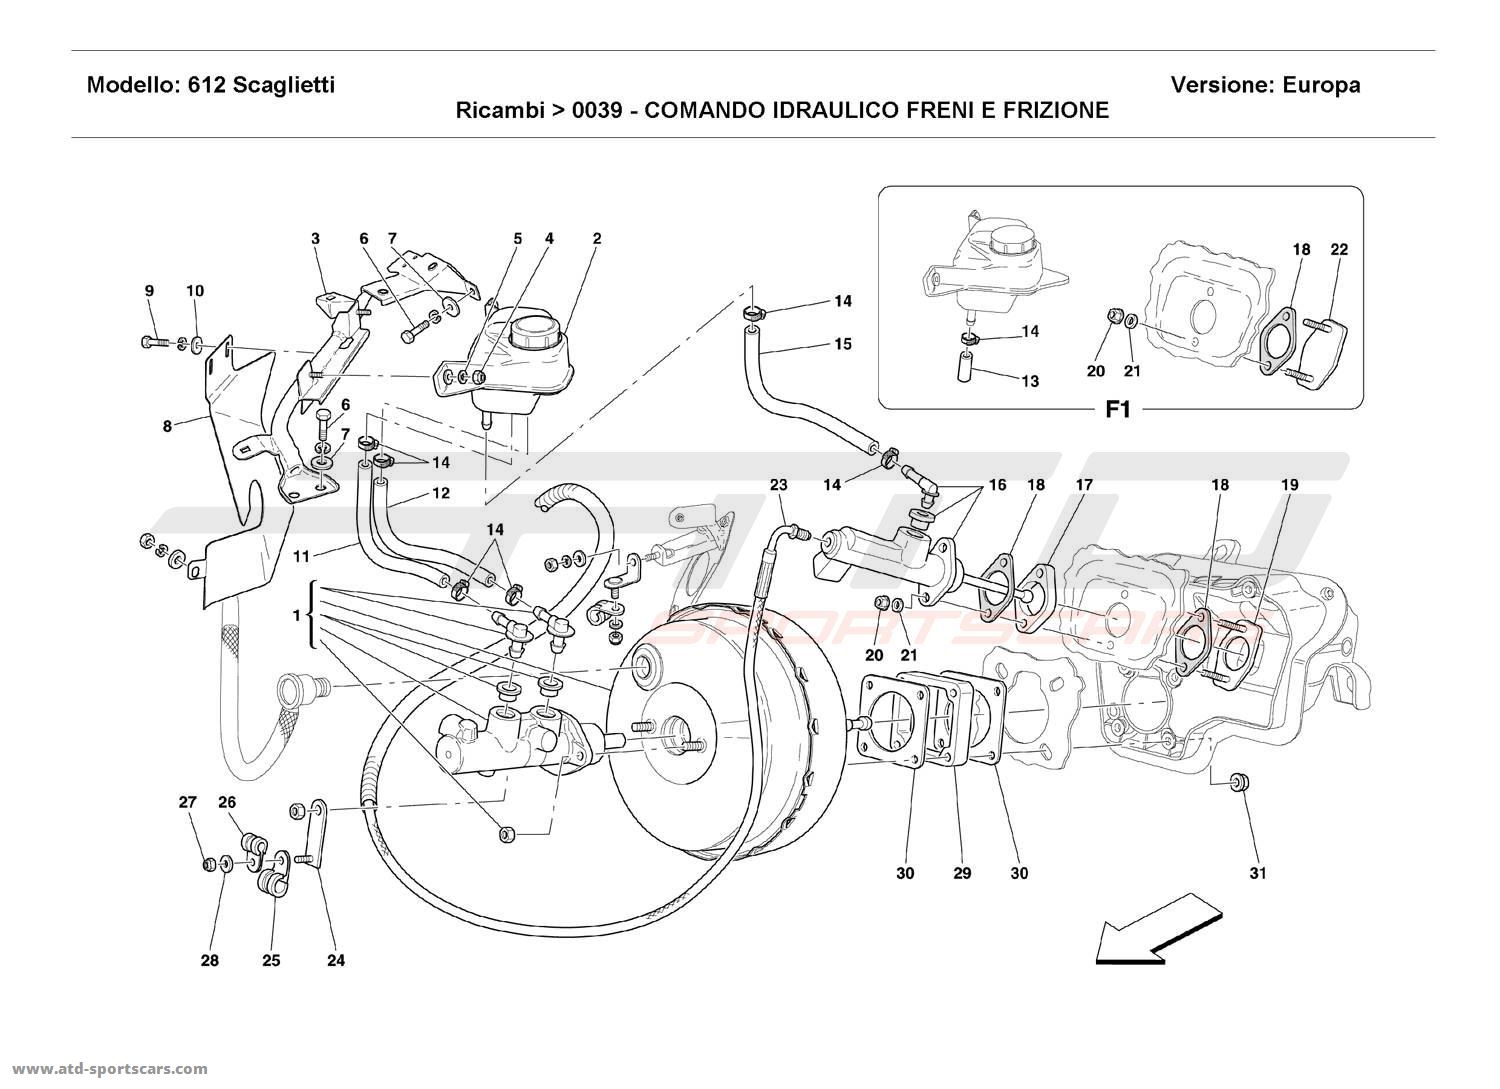 Ferrari 612 Scaglietti BRAKE AND CLUTCH HYDRAULIC SYSTEM